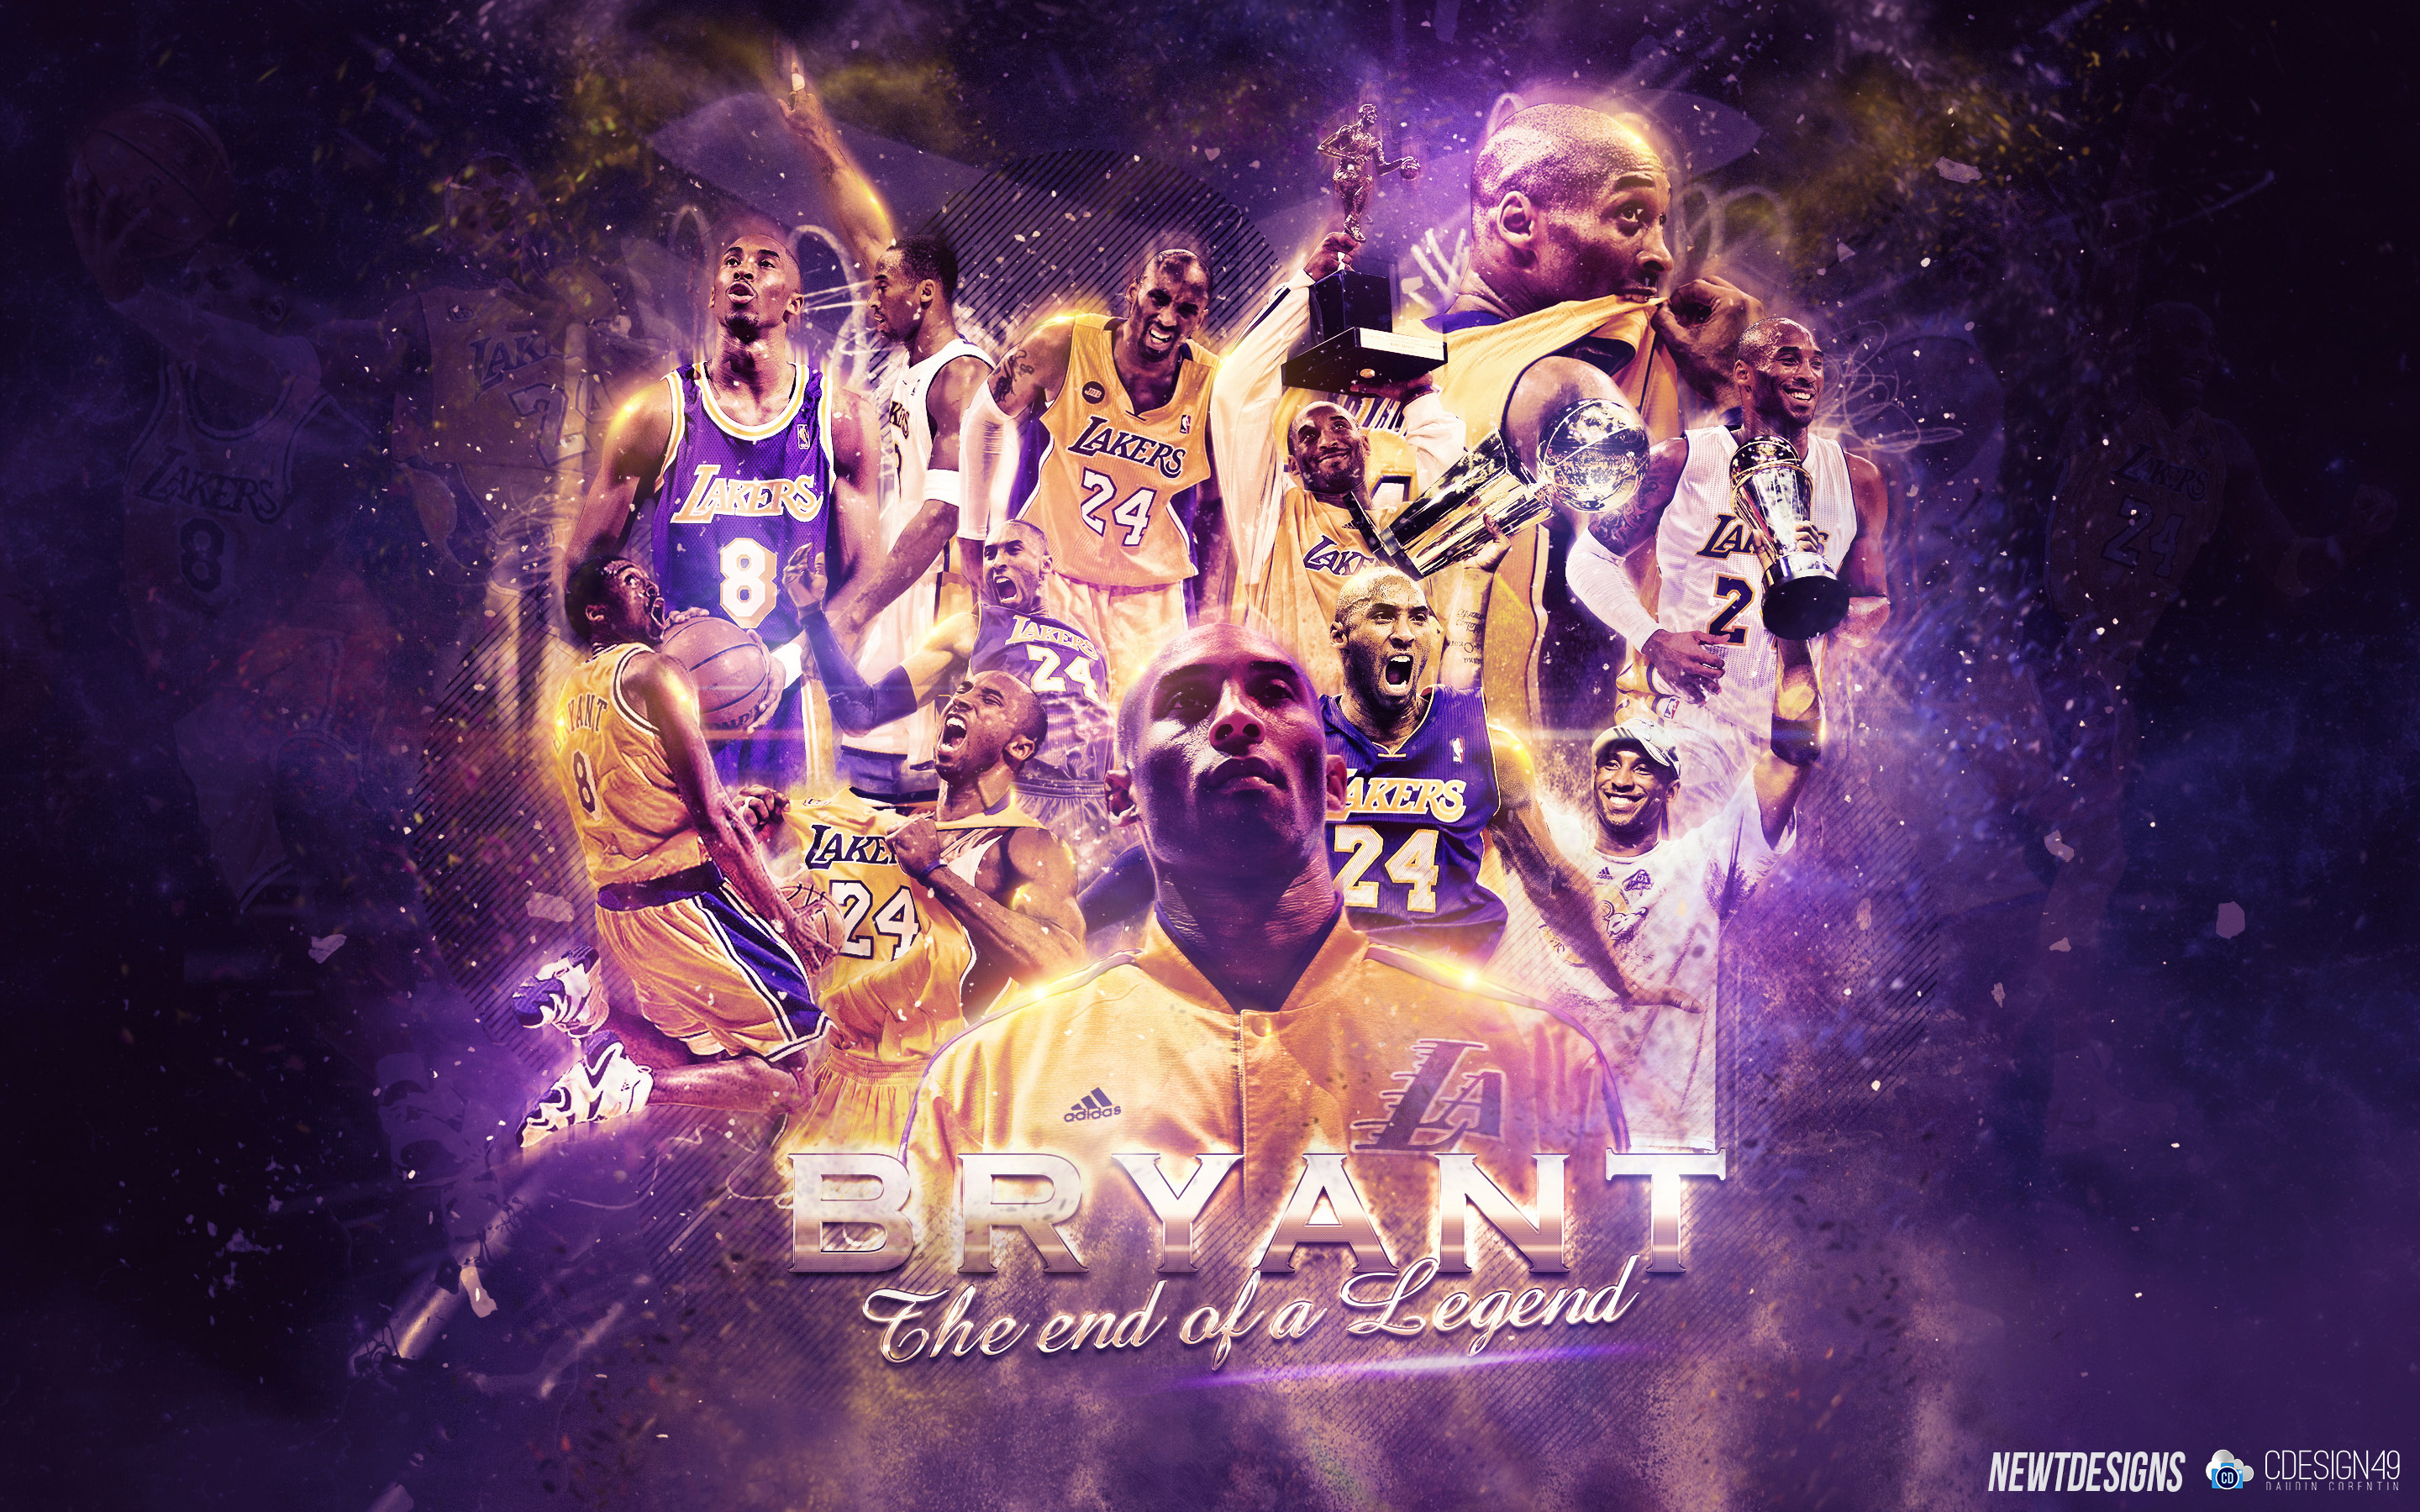 Free Download Kobe Bryant The End Of A Legend Wallpaper Basketball Wallpapers At 2880x1800 For Your Desktop Mobile Tablet Explore 39 Kobe Bryant Legend Wallpaper Kobe Bryant Wallpaper 2016